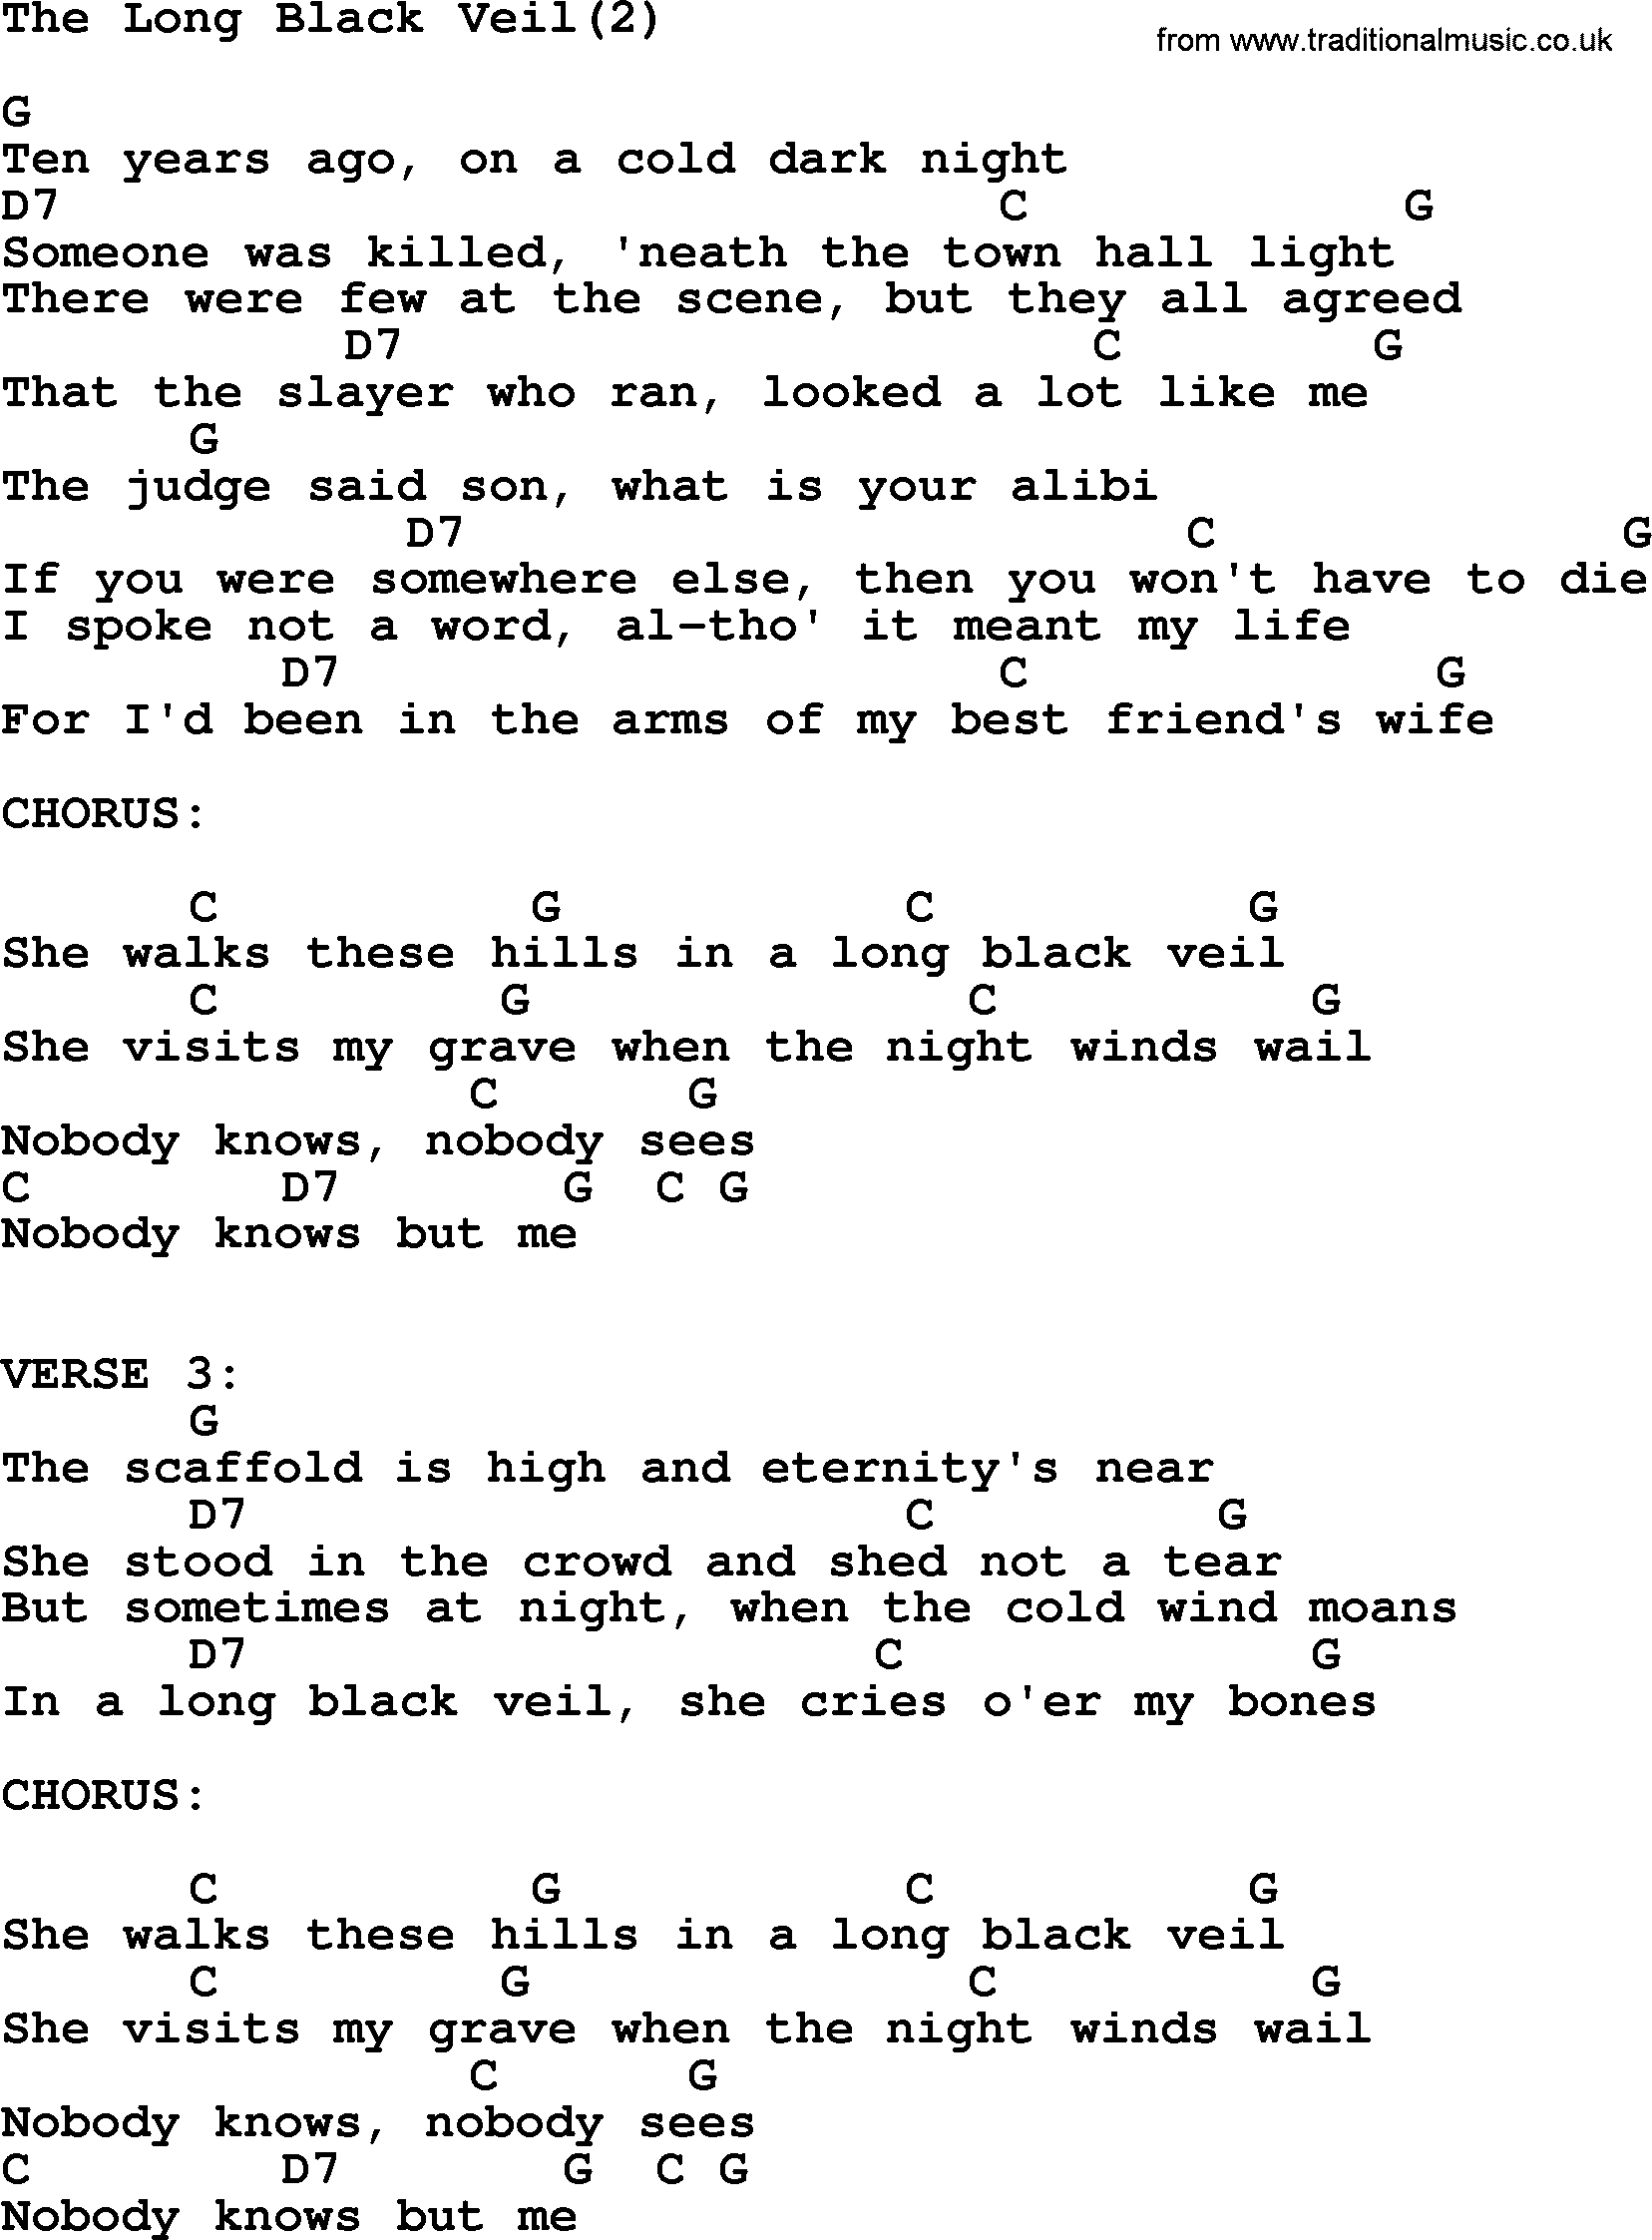 Johnny Cash Song The Long Black Veil 2 Lyrics And Chords